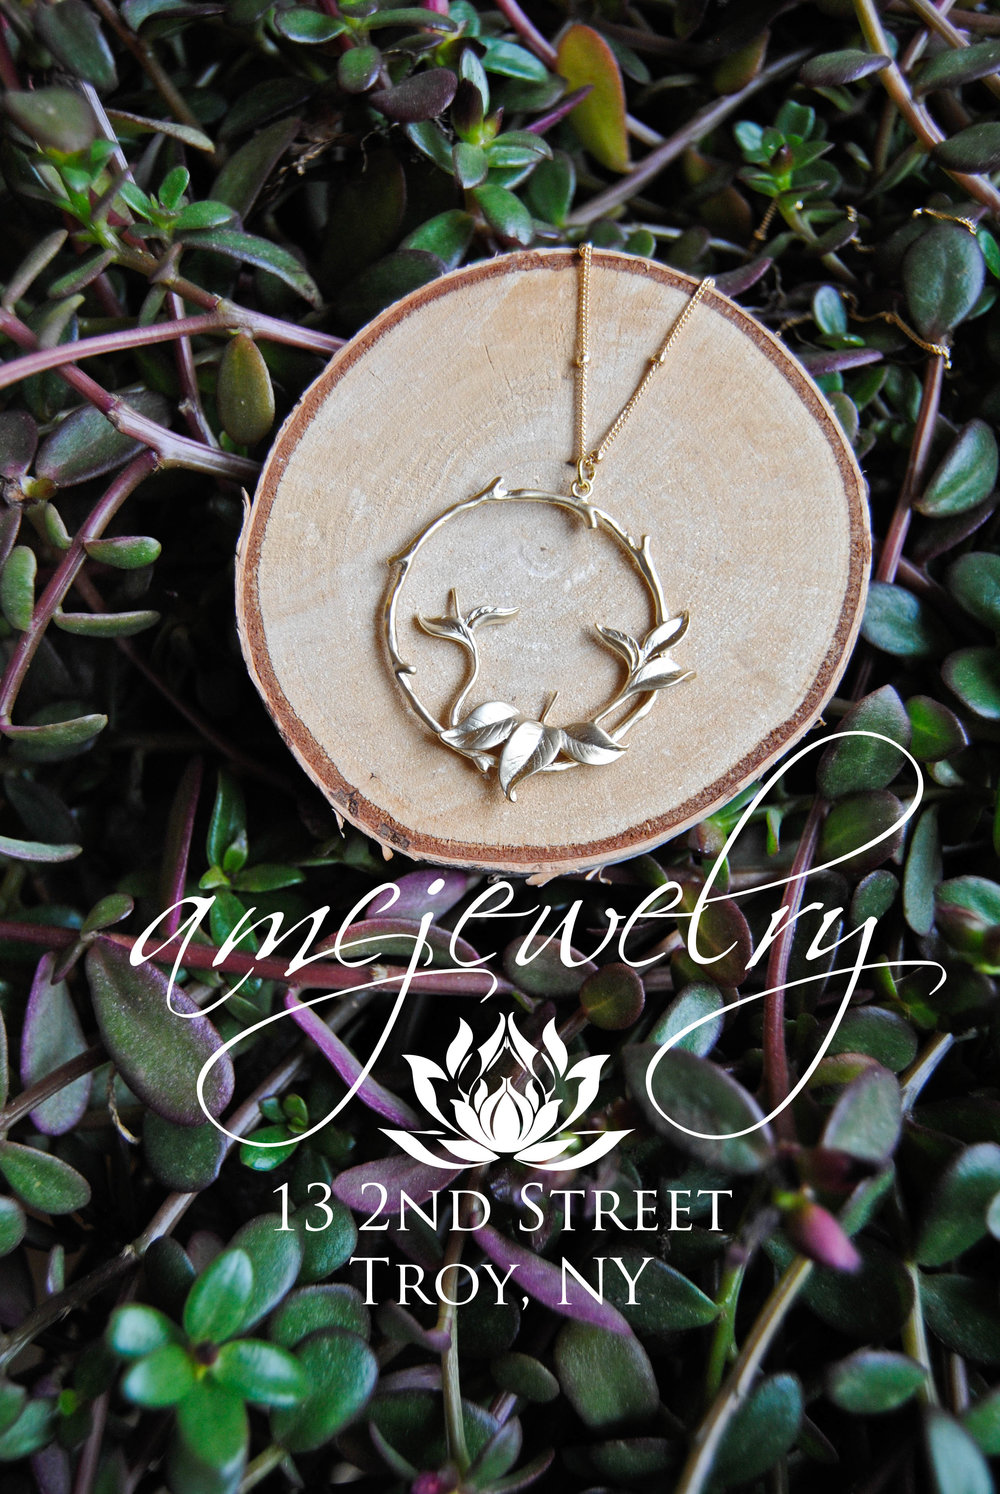 Friday January 6th 5-7 : One of Our Featured Artists is back for January!! AMCooper Jewelry. They have just opened their first shop in Troy but have been selling at Farmers Markets and Pop Up Events previously.  http://www.amcjewelry.com